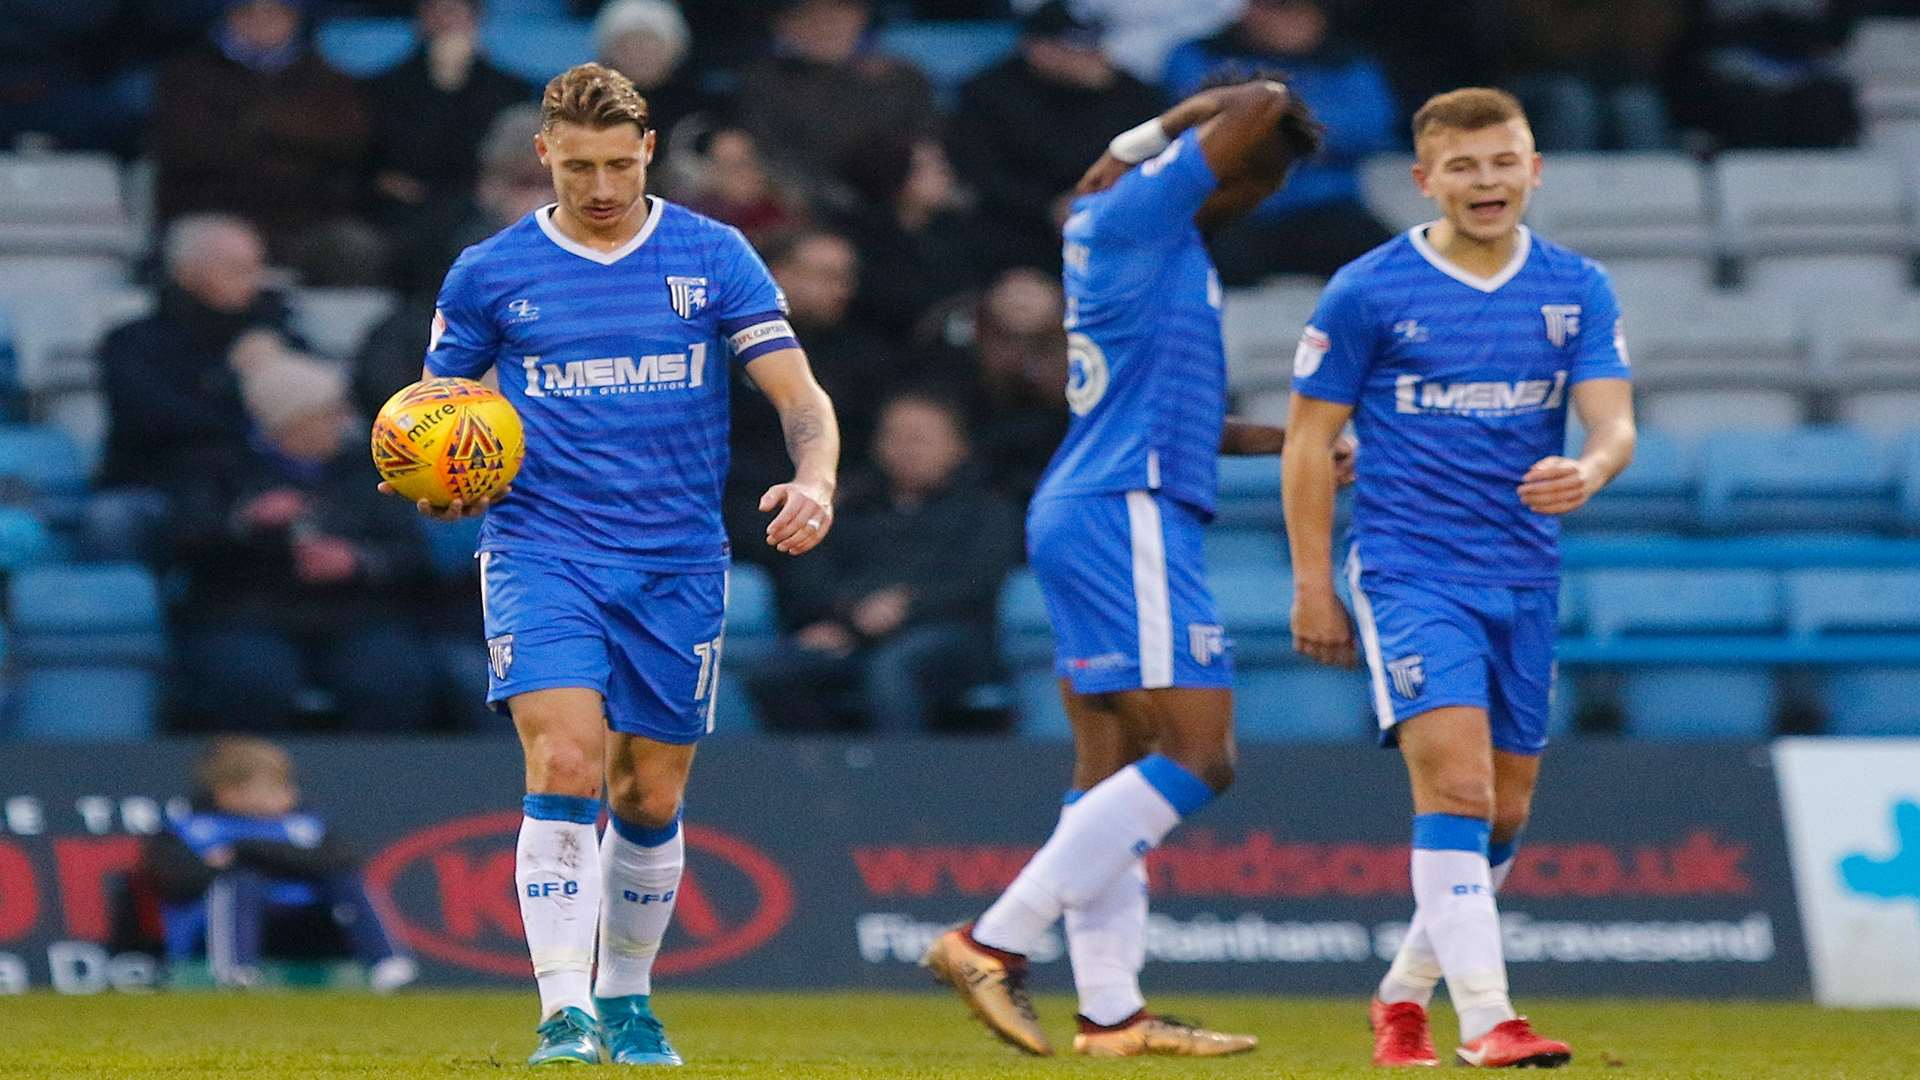 Gills have it all to do after Rochdale's 27th-minute opener Picture: Andy Jones